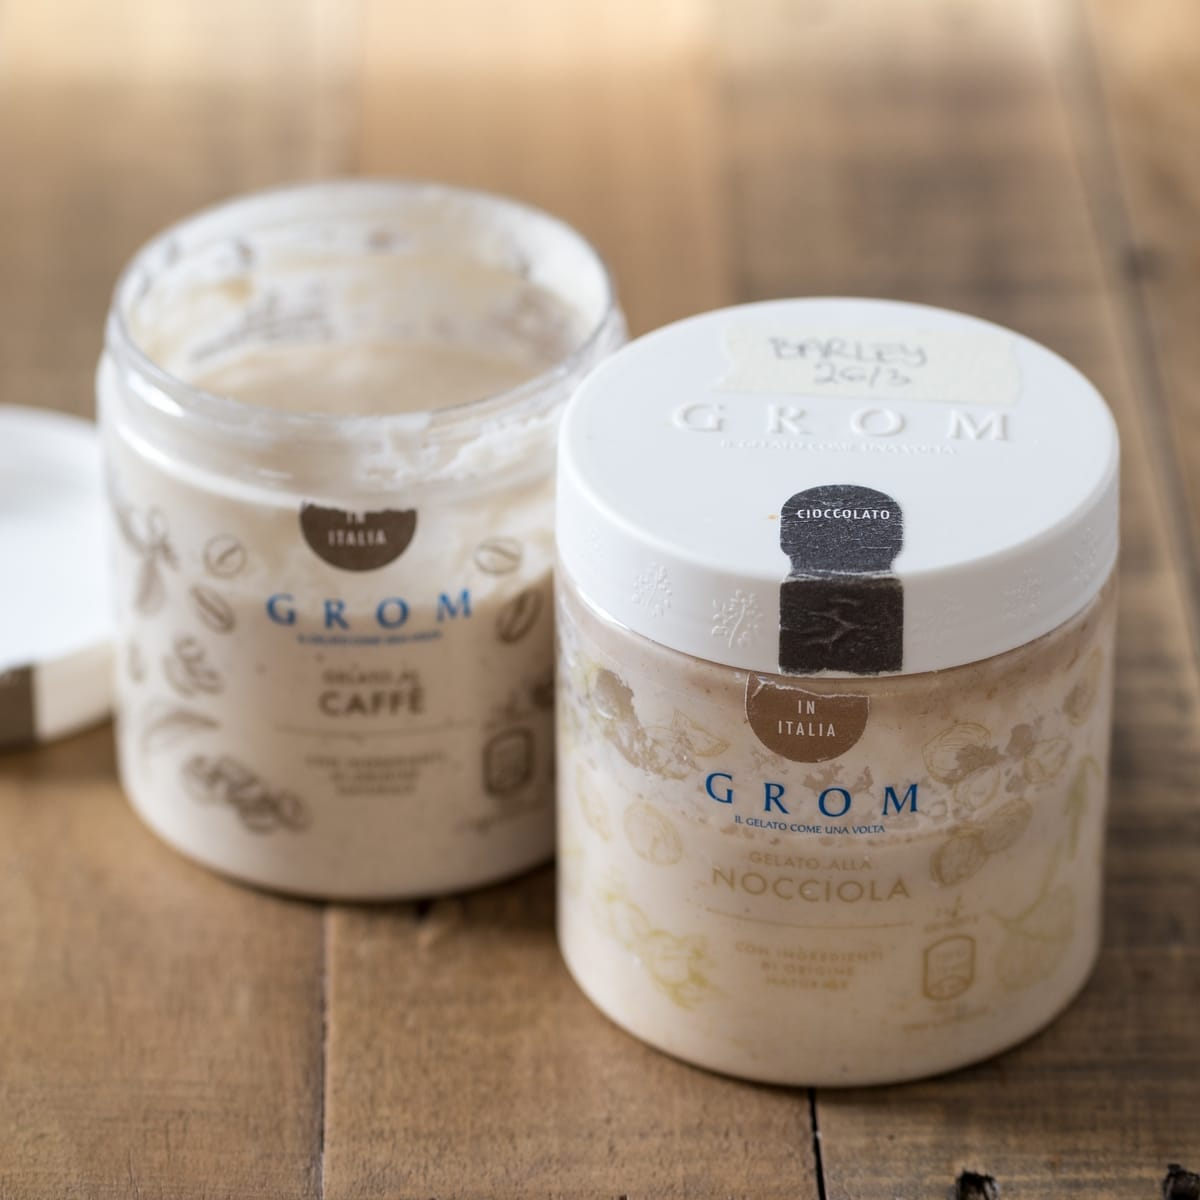 Two plastic gelato jars containing sourdough starter.